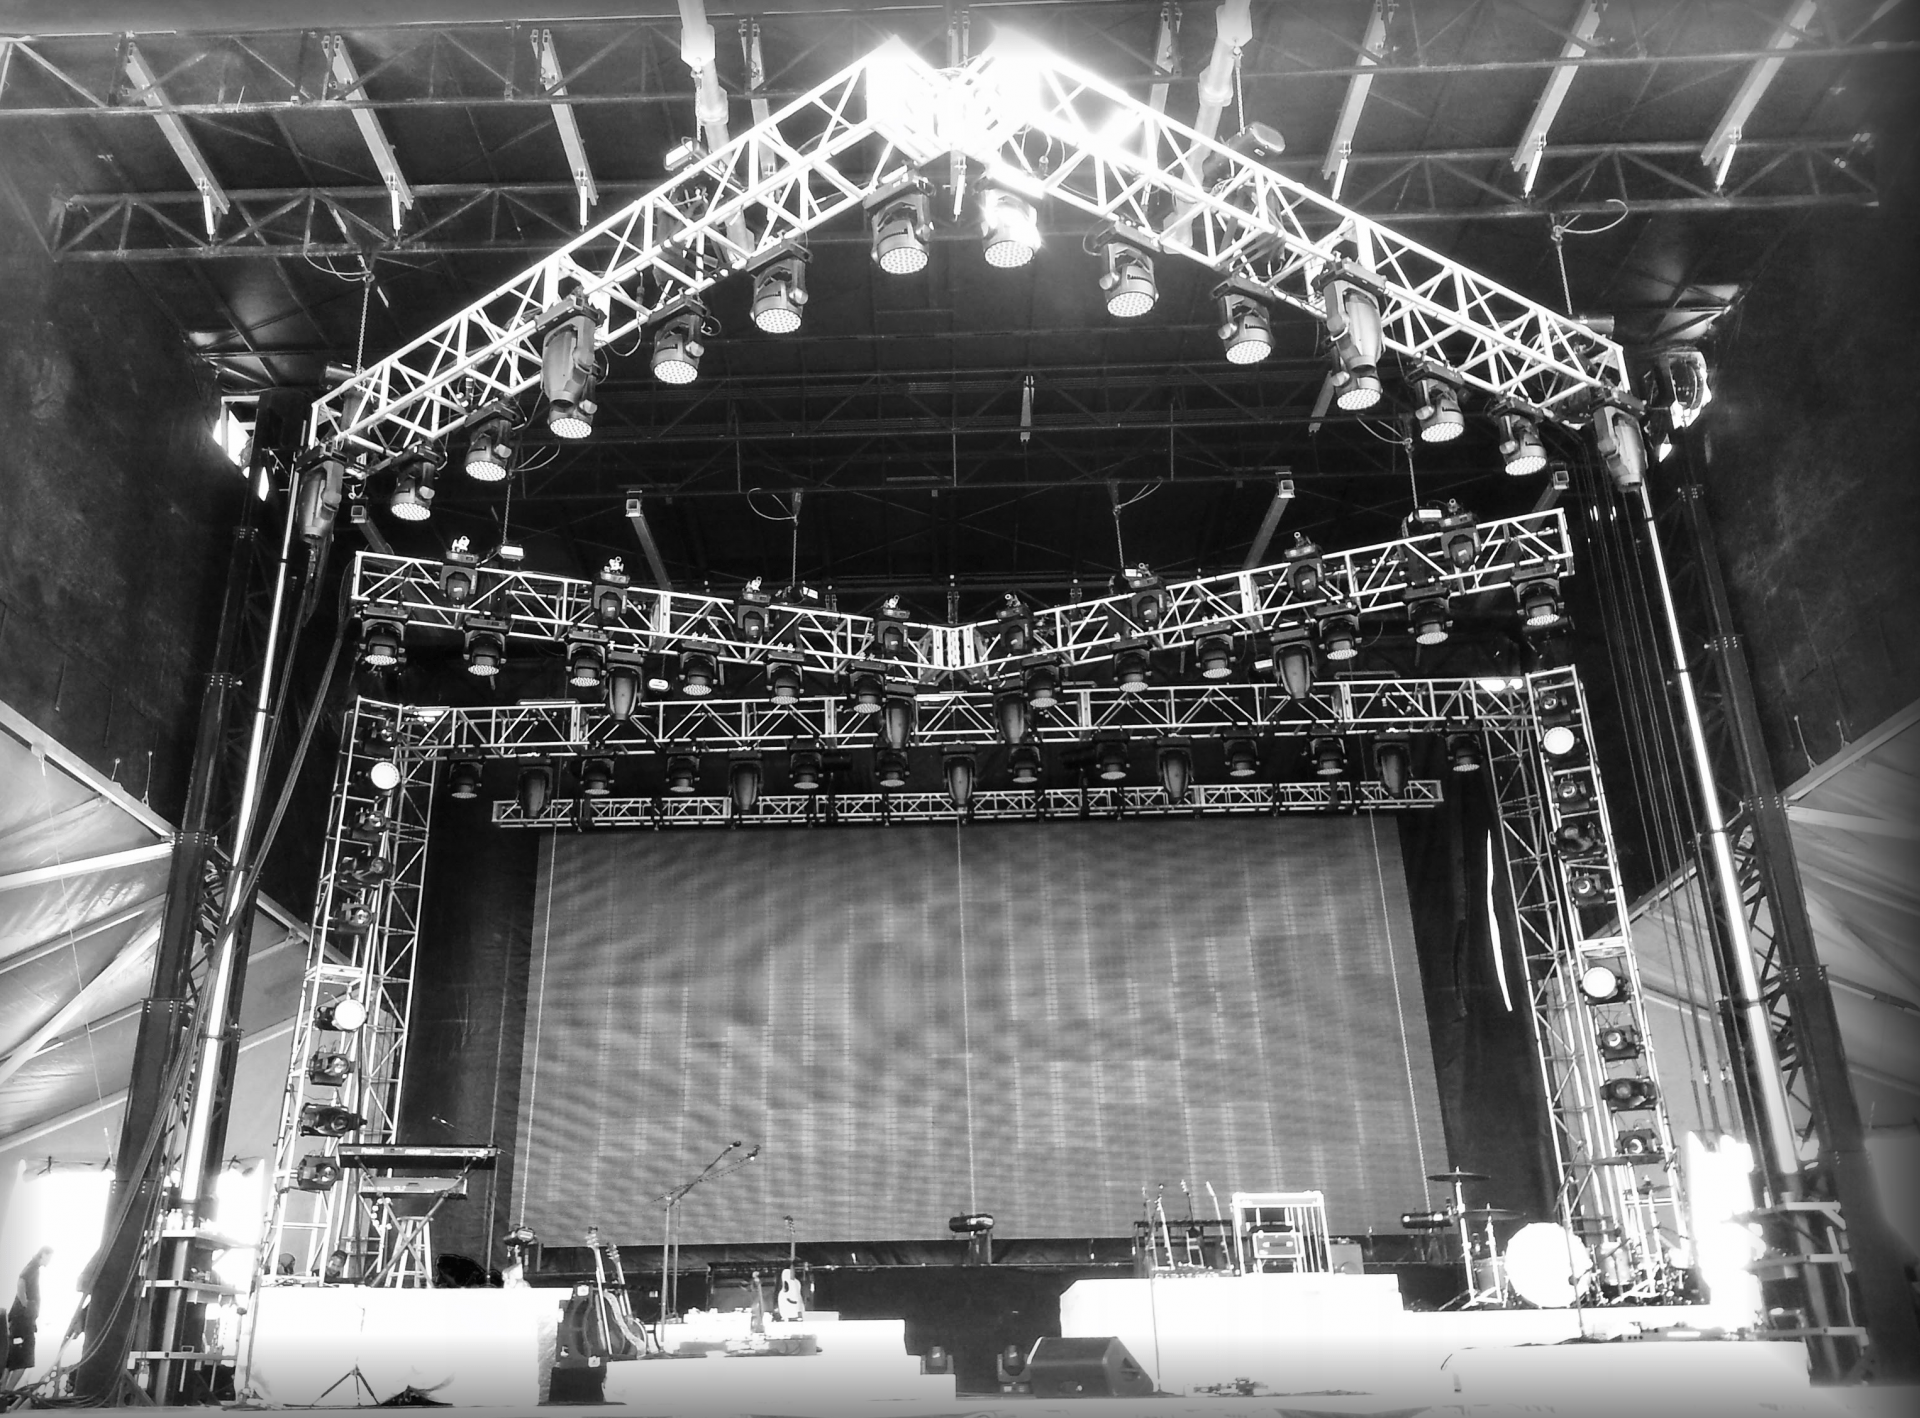 front view of stage shown in black&white, with massive truss structure holding dozens of LED moving lights for Carrie Underwood concert